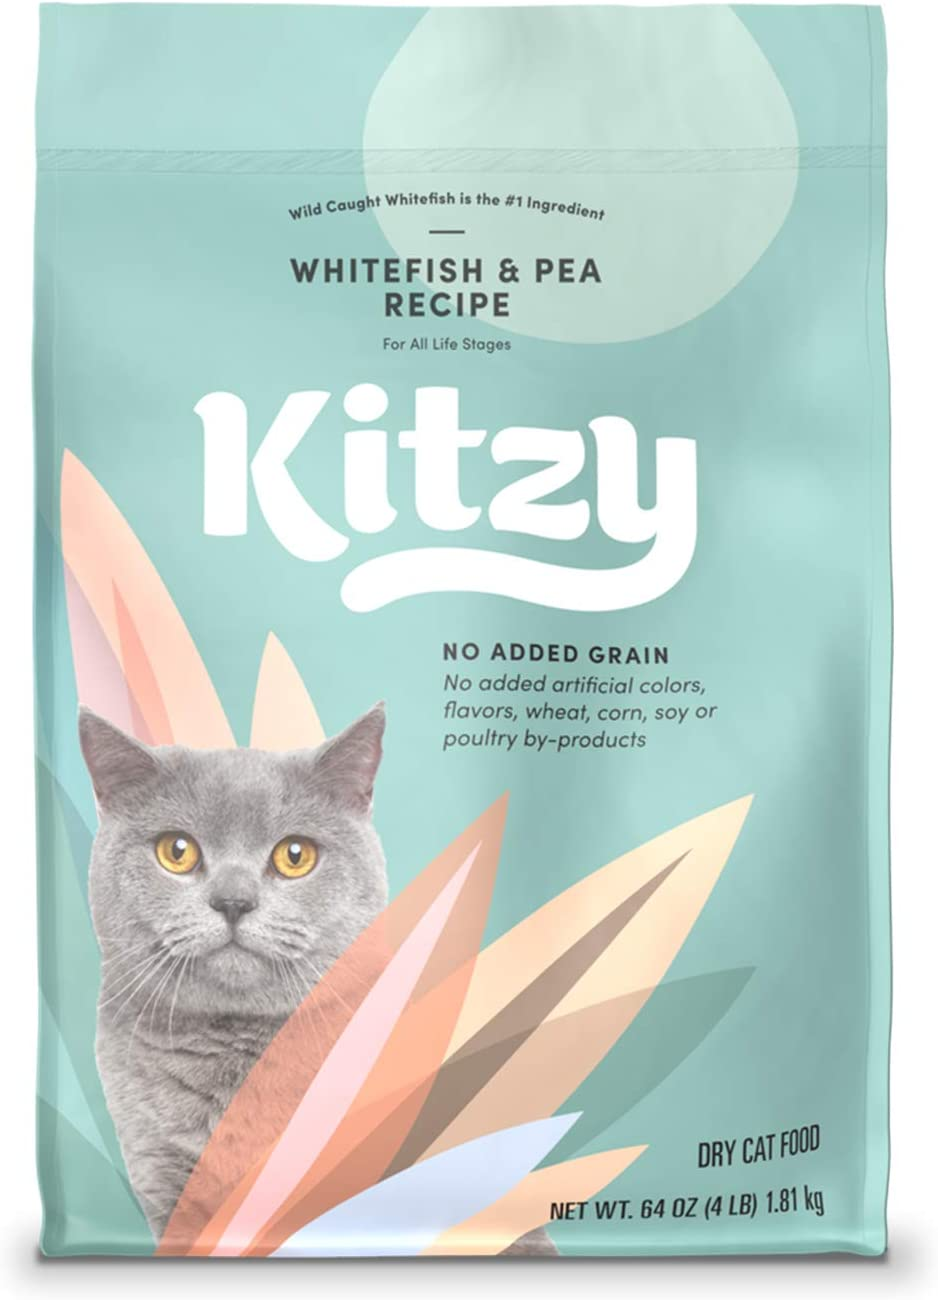 Kitzy Dry Cat Food by Amazon, Whitefish and Pea Recipe (4 lb bag)